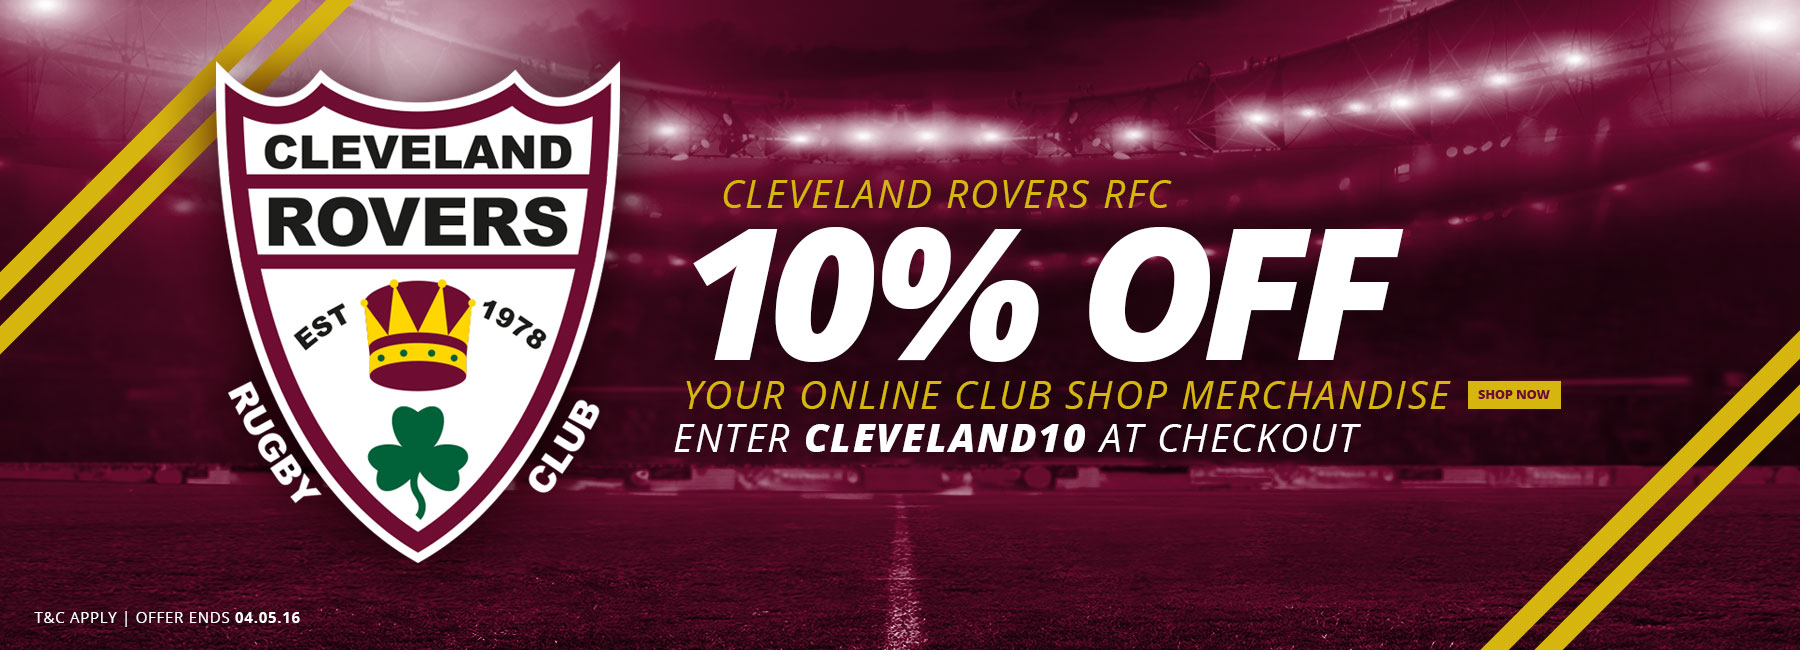 Cleveland Rovers